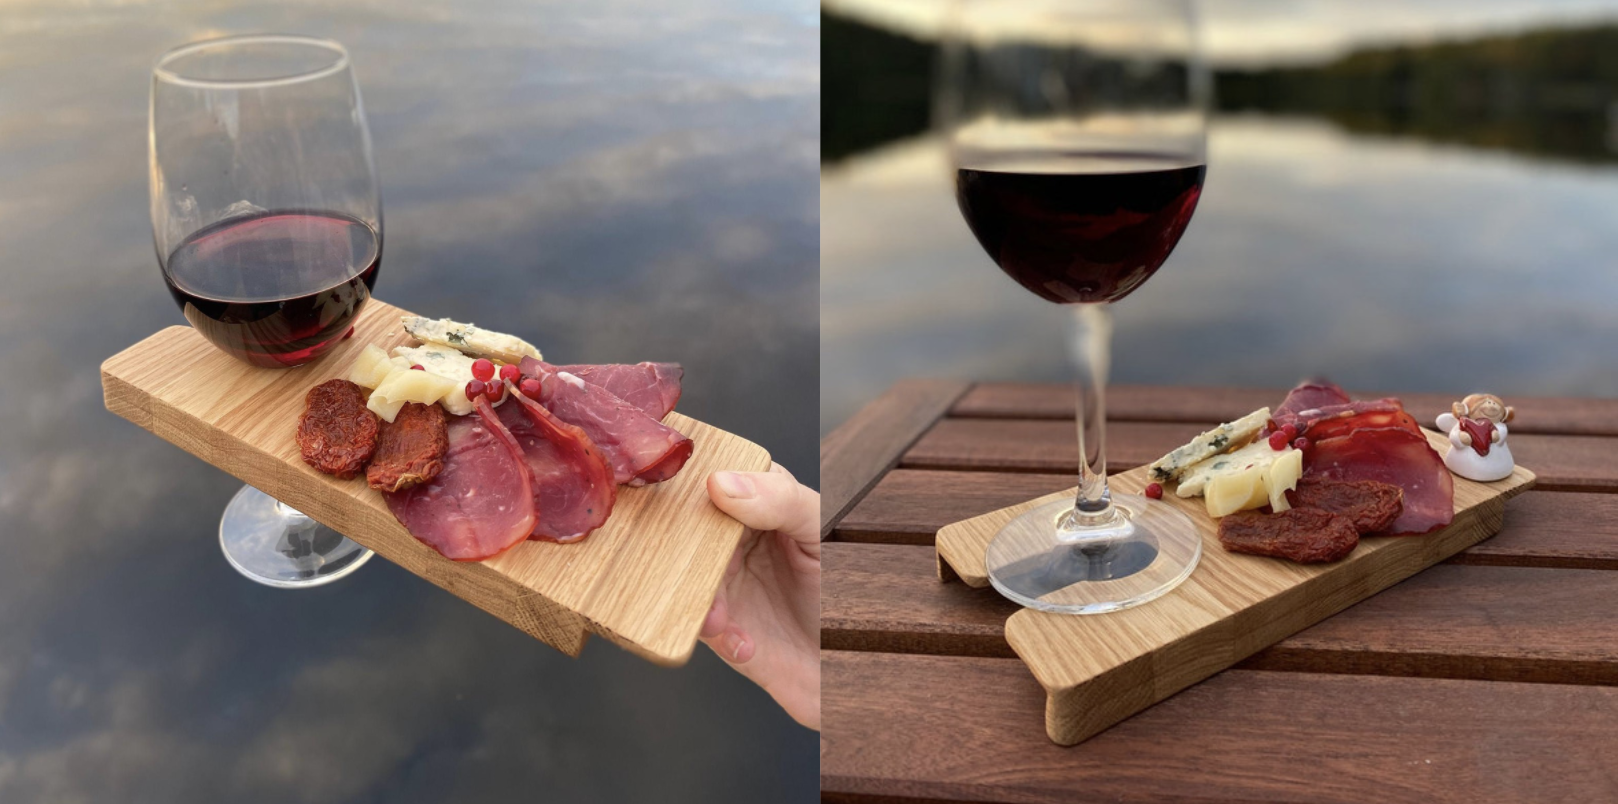 This Personal Charcuterie Board Holds A Glass Of Wine